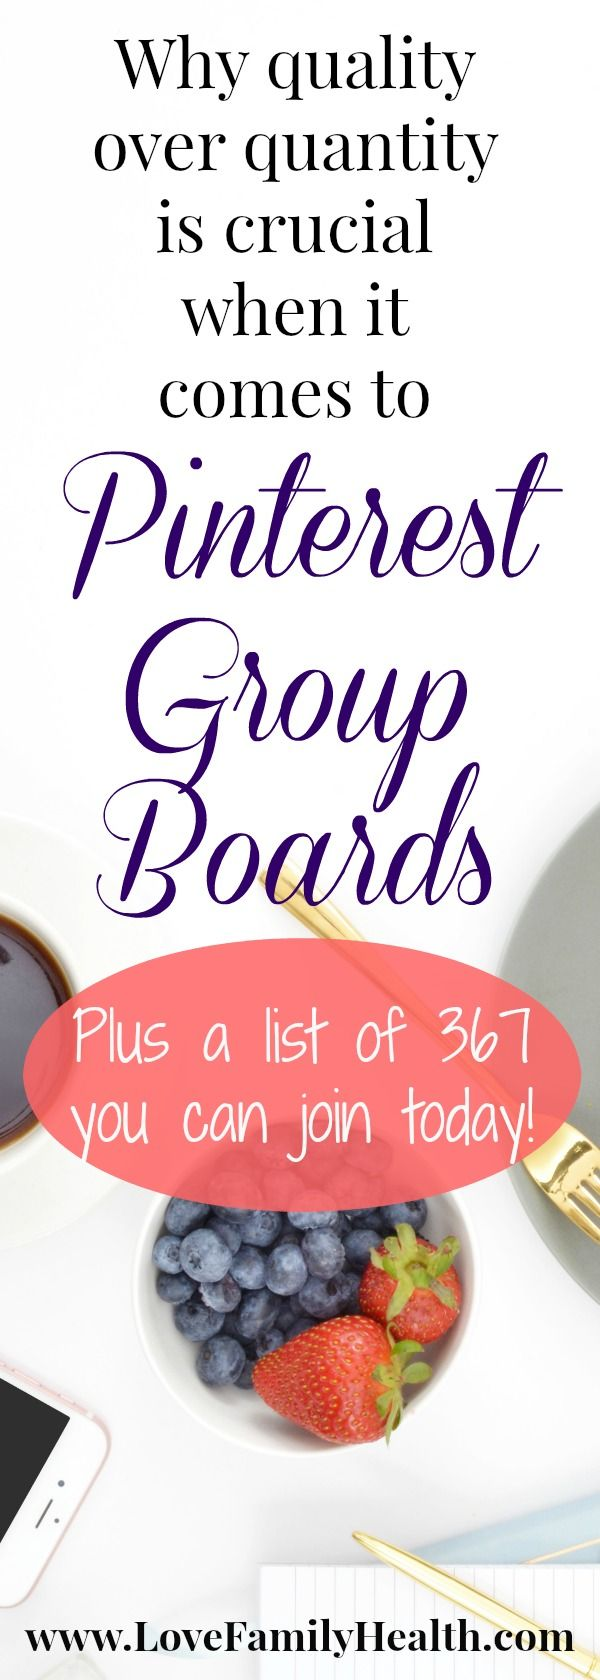 #Blogging Why Quality over Quantity is crucial when it comes to Pinterest Group Boards